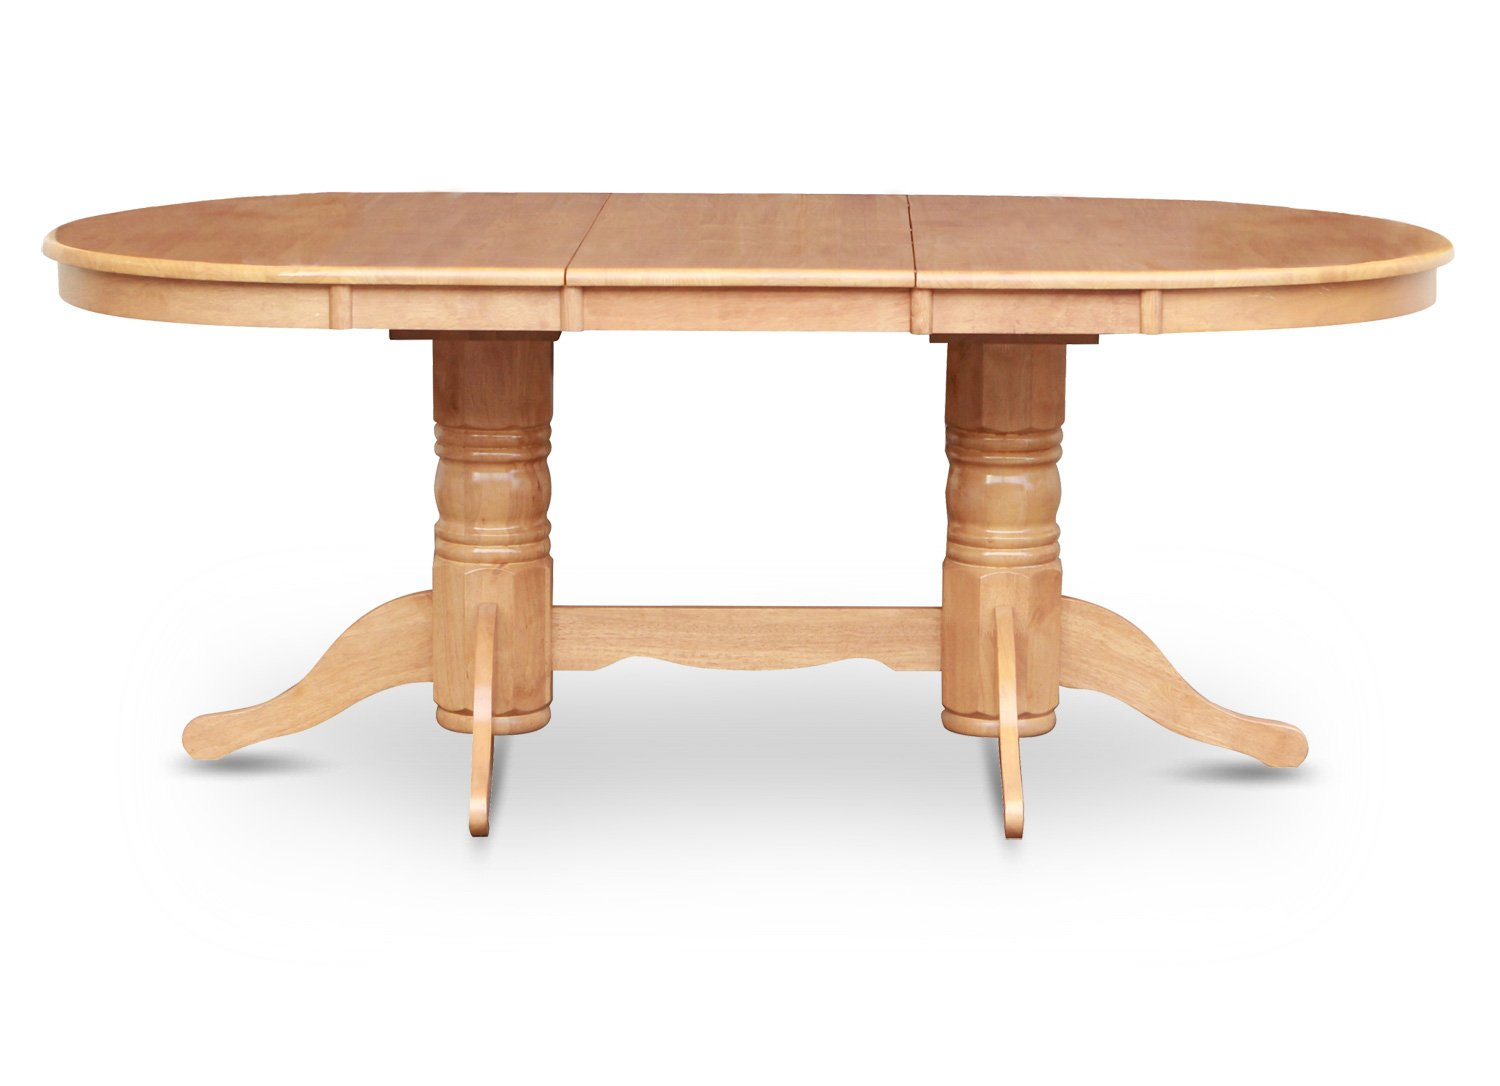 Vancouver Oval Dining Room Table 17quot extension leaf in  : 51aa6d856c09c210483b from dinettestyle.ecrater.com size 1500 x 1086 jpeg 85kB